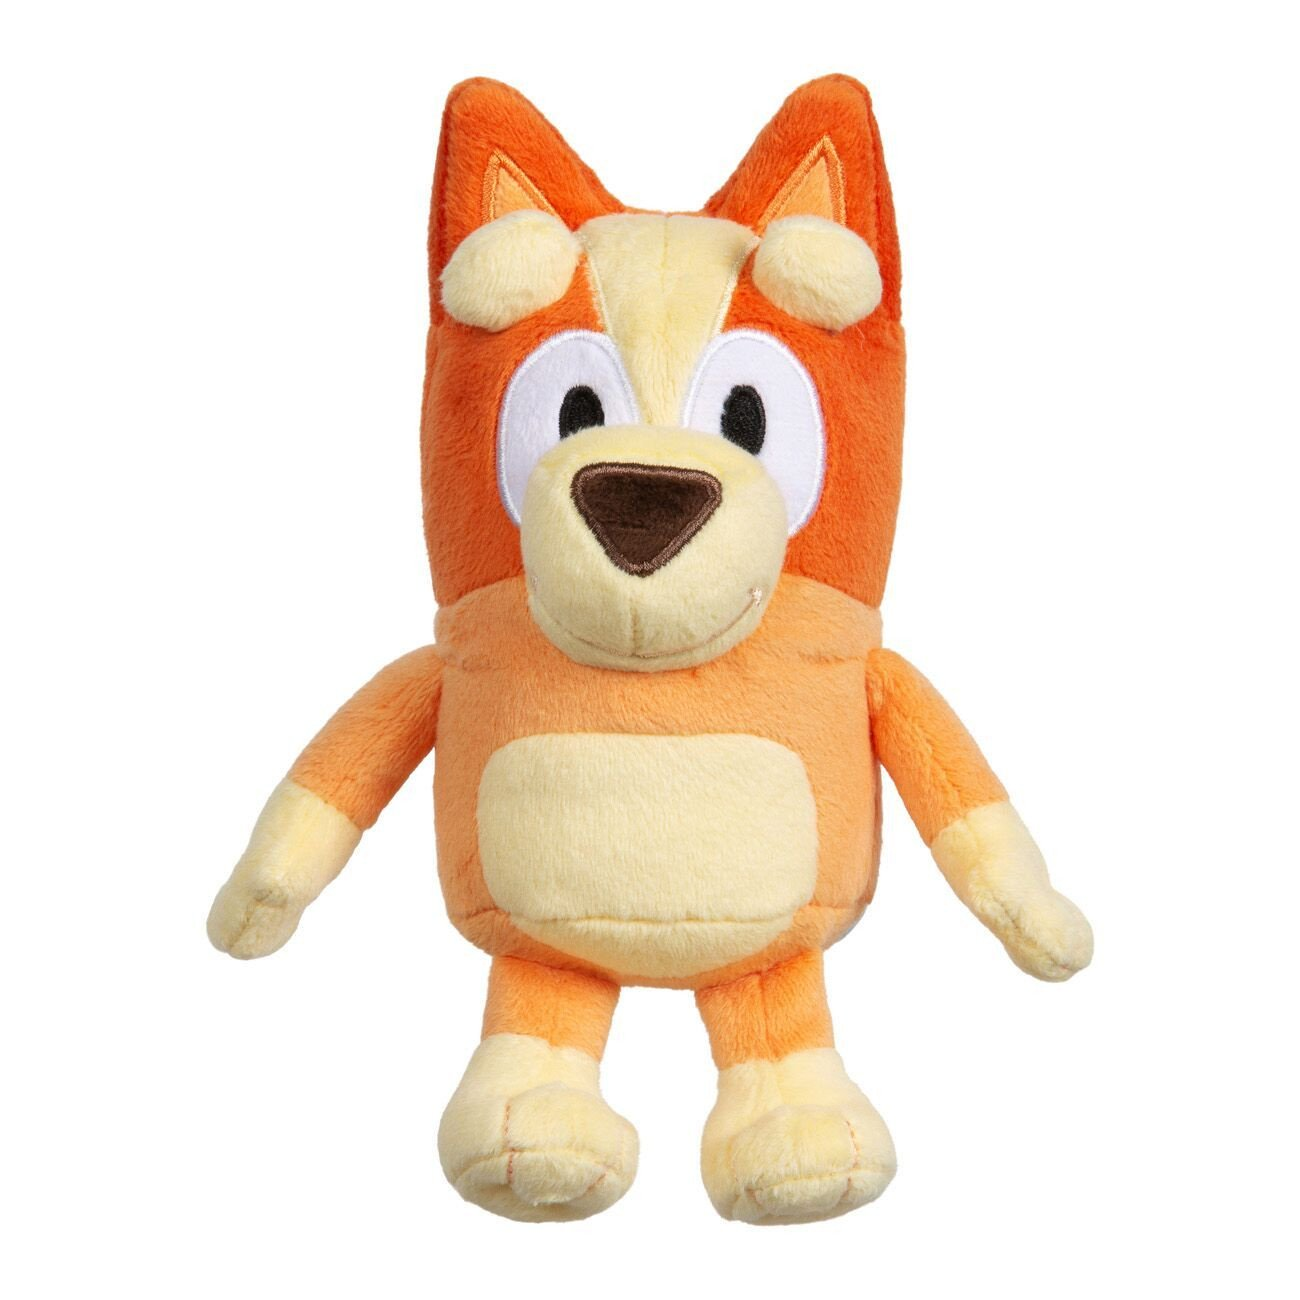 BLUEY S1 PLUSH - BINGO | Bluey | Toyworld Frankston